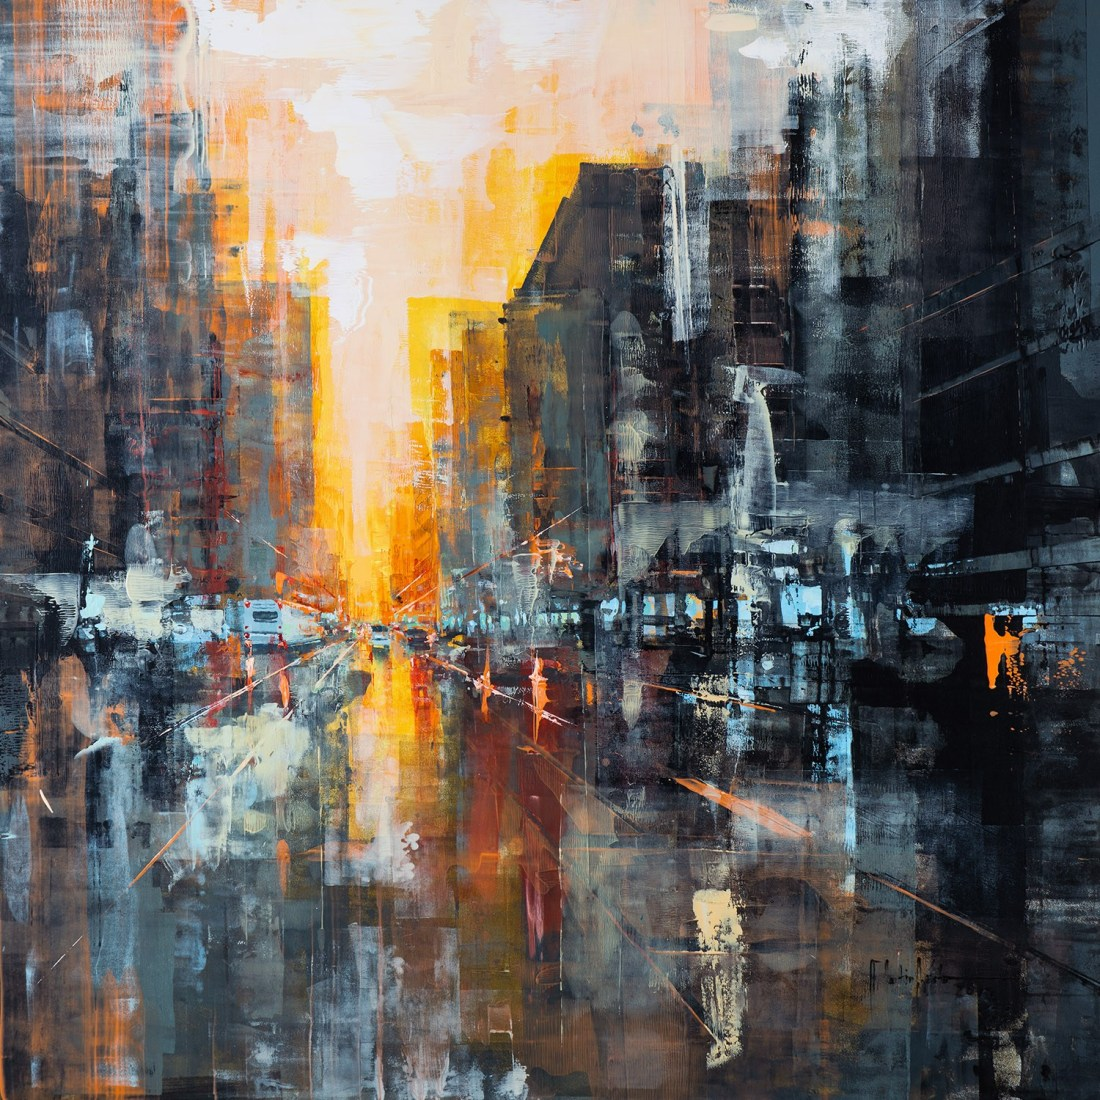 Martin Köster, Hong Kong sun rise I, Oil on panel, Unikat, 2019, 100 x 100 cm